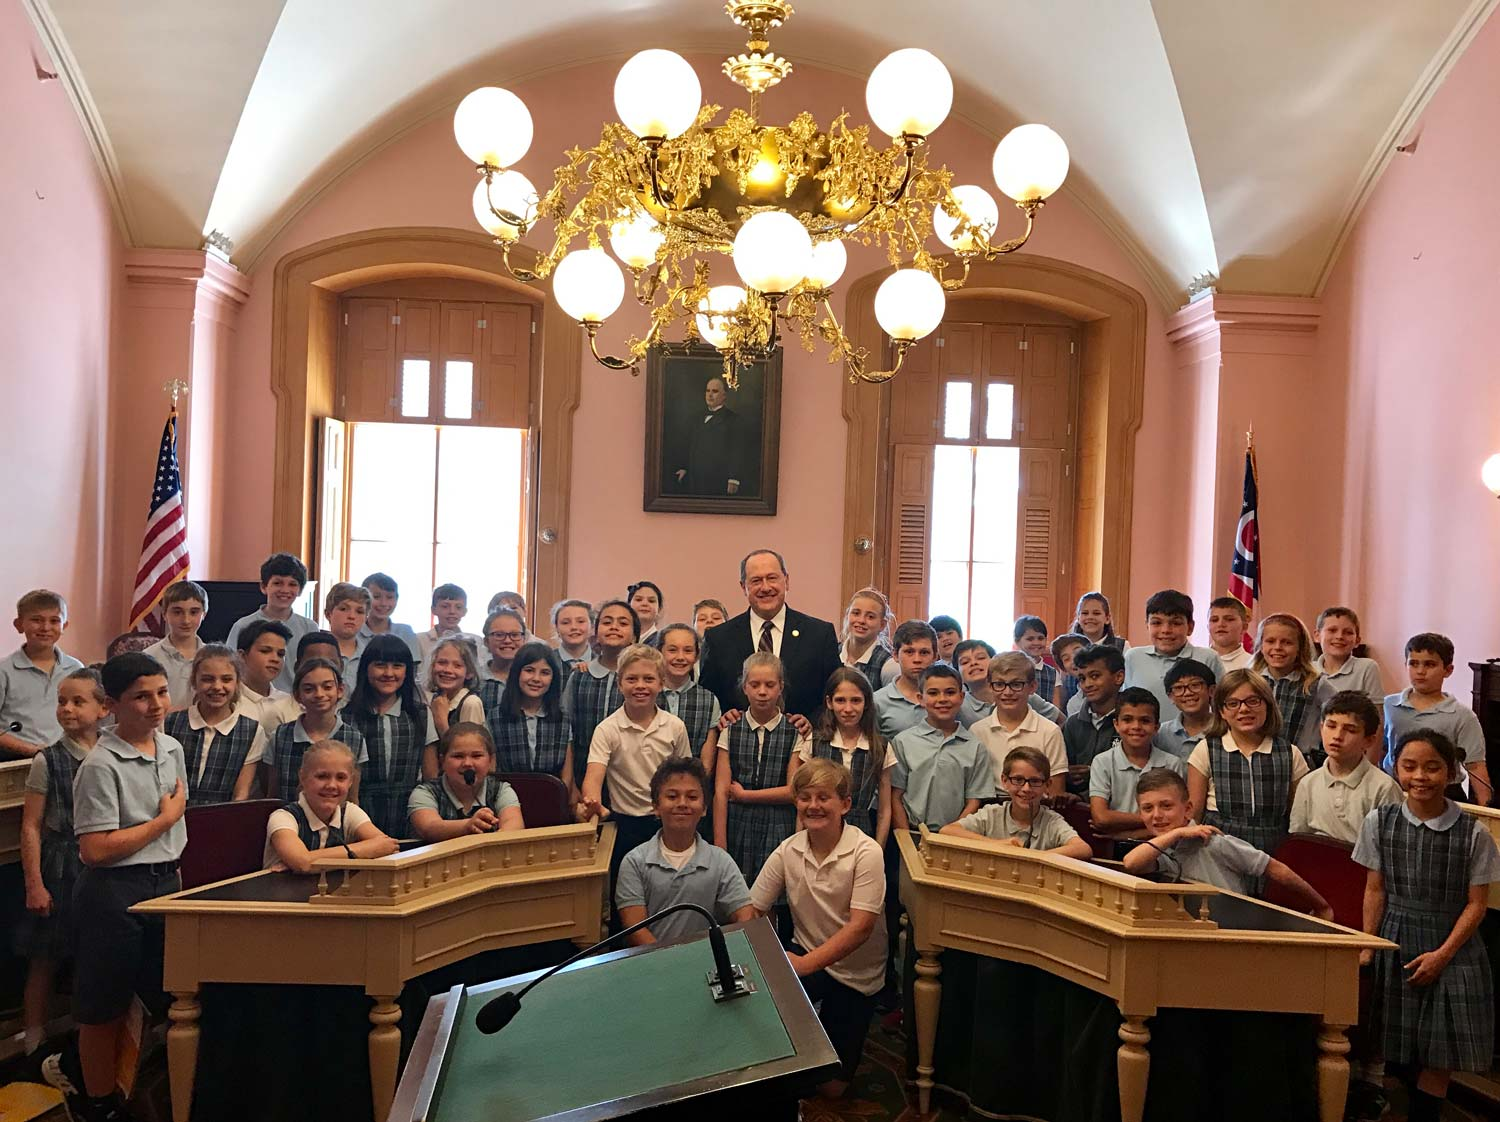 4th Graders From Immaculate Conception School